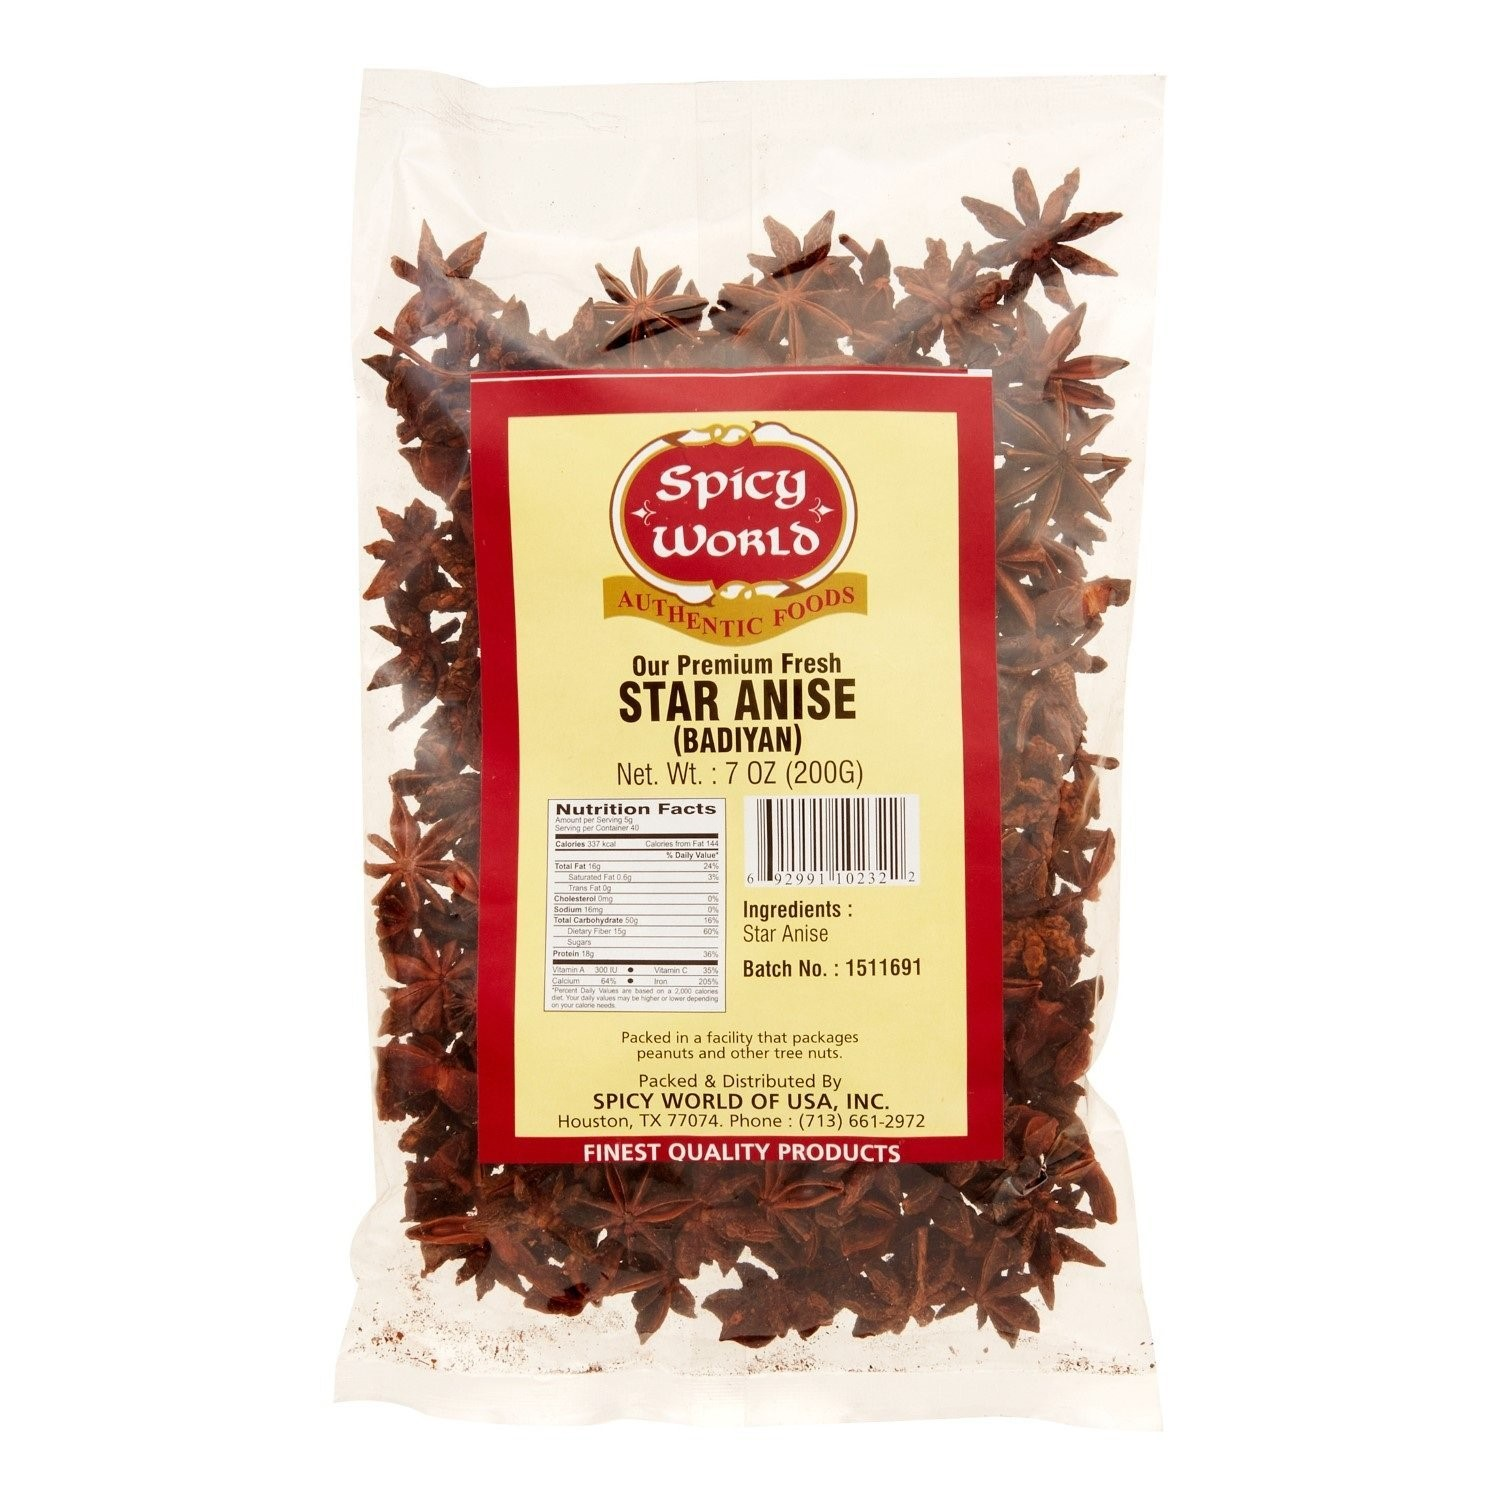 Spicy World Whole Star Anise, 7 Oz